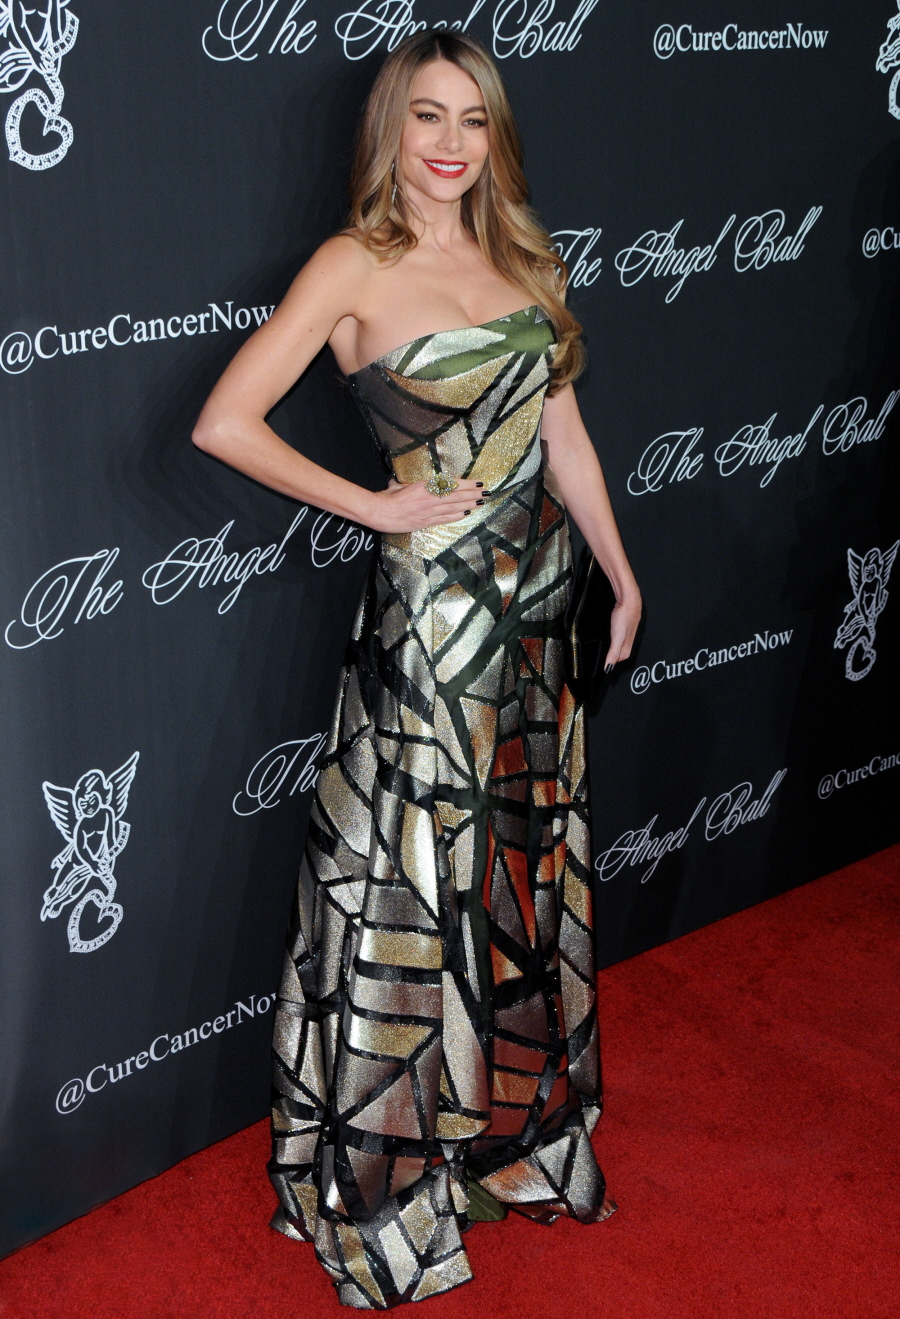 Cele bitchy blake lively ryan reynolds in his hers gucci at the angel ball sexy - Sofia gucci diva ...